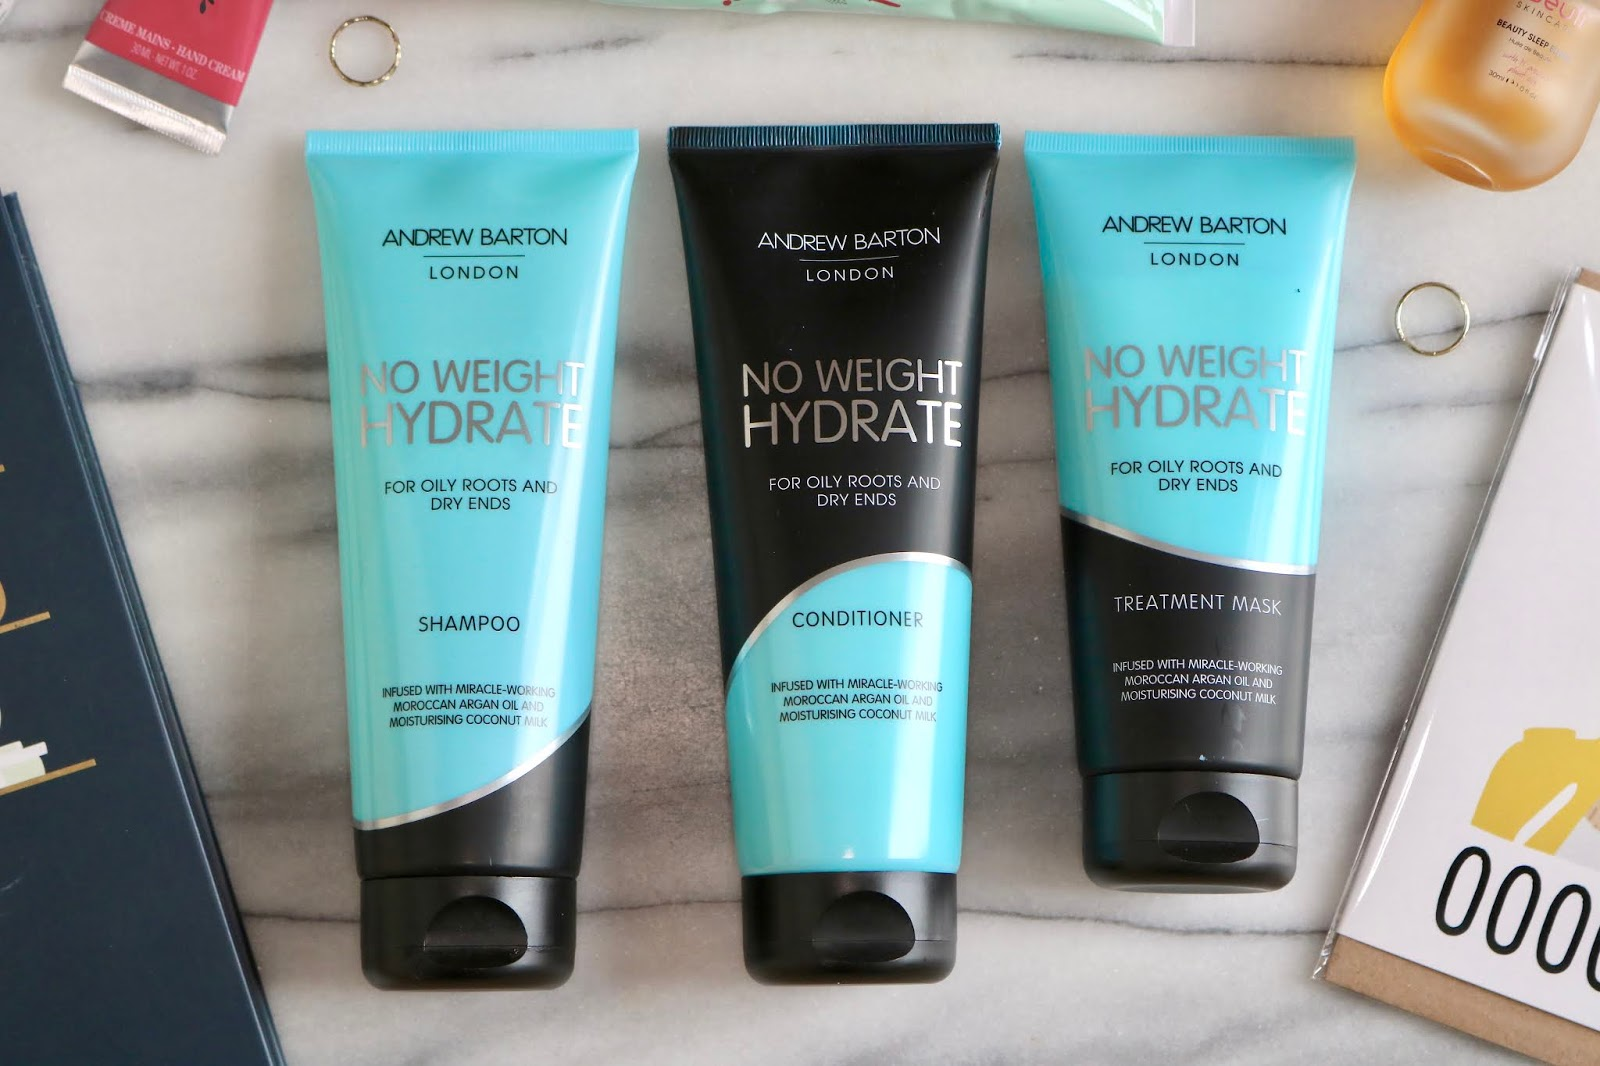 ANDREW BARTON NO WEIGHT HYDRATE RANGE